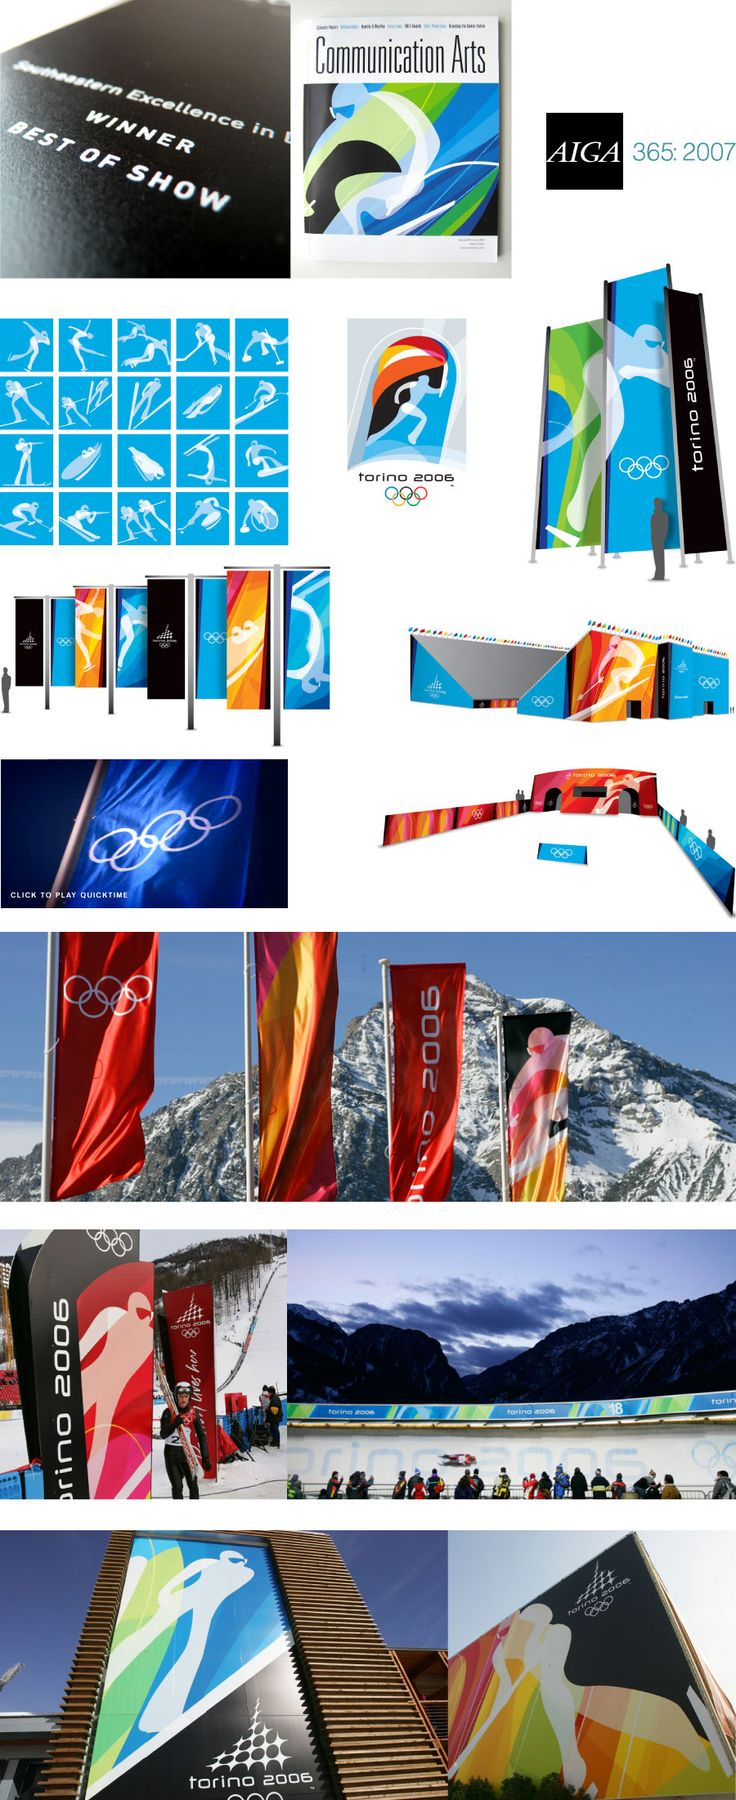 "We were honored to learn that our work for the 2006 Olympic Winter Games in Torino, Italy will be included in the AIGA Design Archives, and that it was named Best of Show at the 2007 AIGA SEED Awards in Atlanta. In 2006, Communication Arts ran a feature article on the Torino ""Look of the Games"". The project was simple but comprehensive: create a graphic system and a set of pictograms for the Olympic Winter Games. Make it passionate. Make it Italian. Make it work on everything from banners to…"